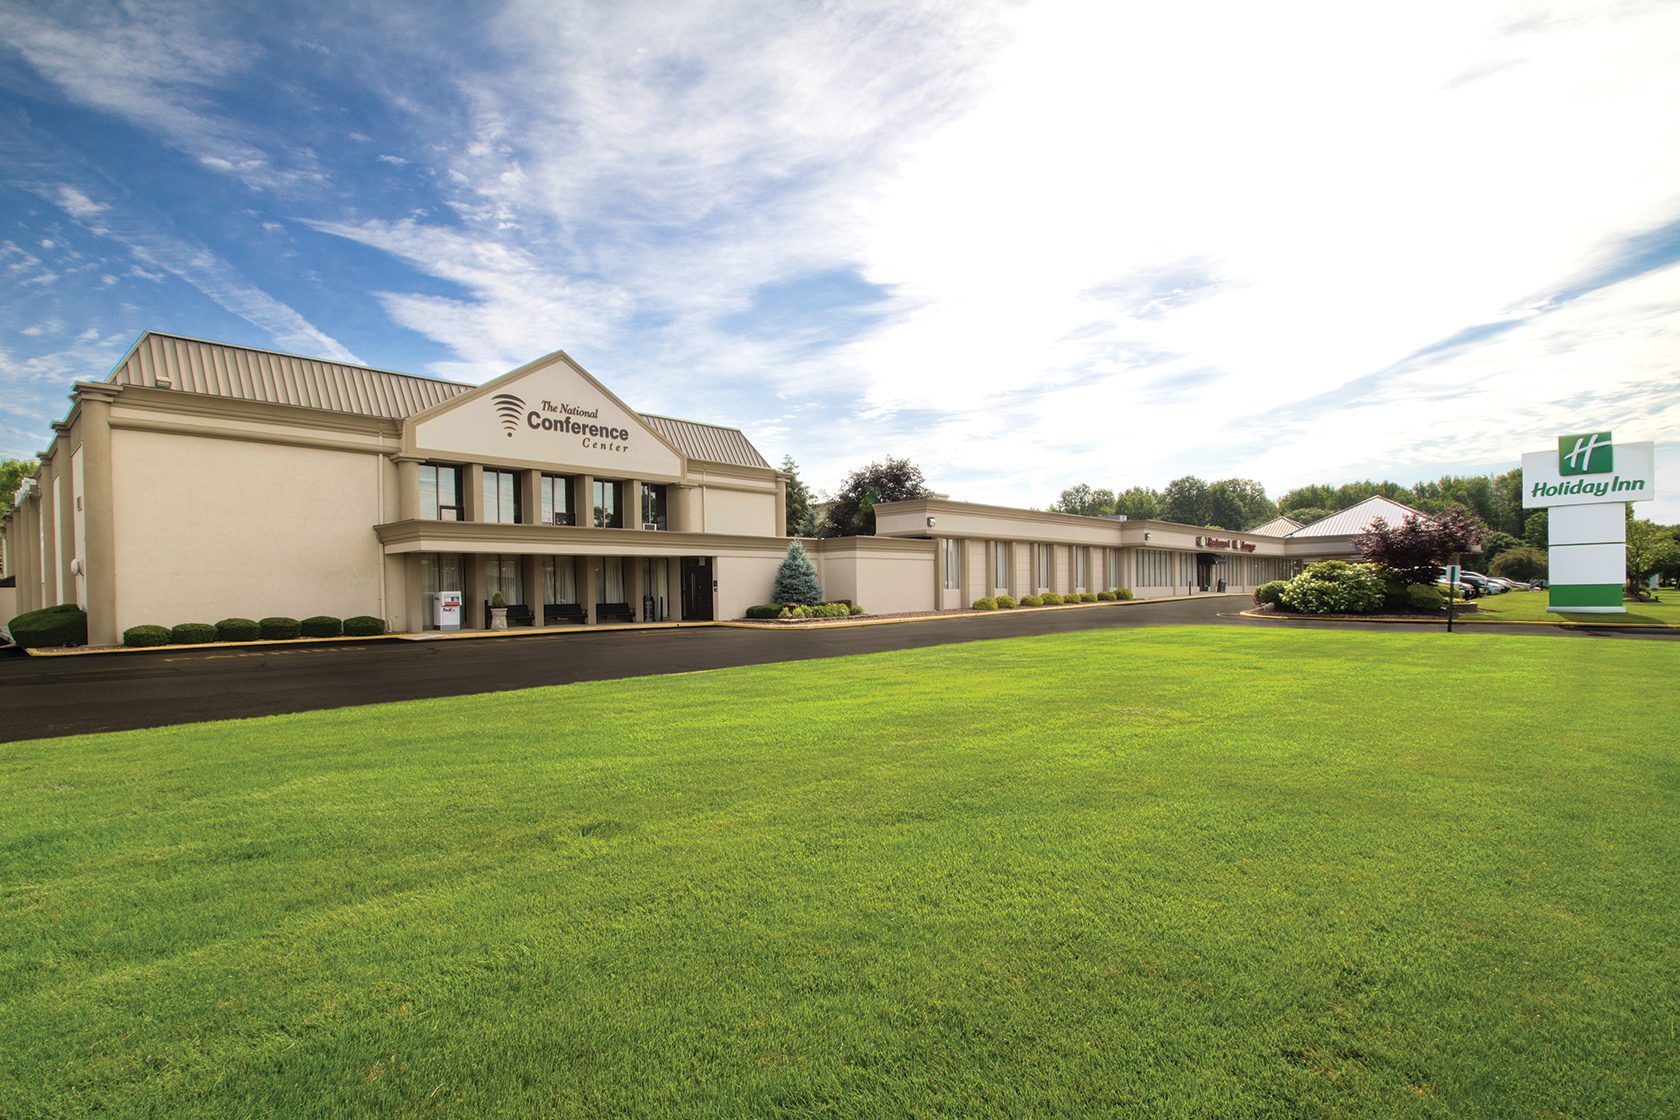 The National Conference Center | Smart Meetings